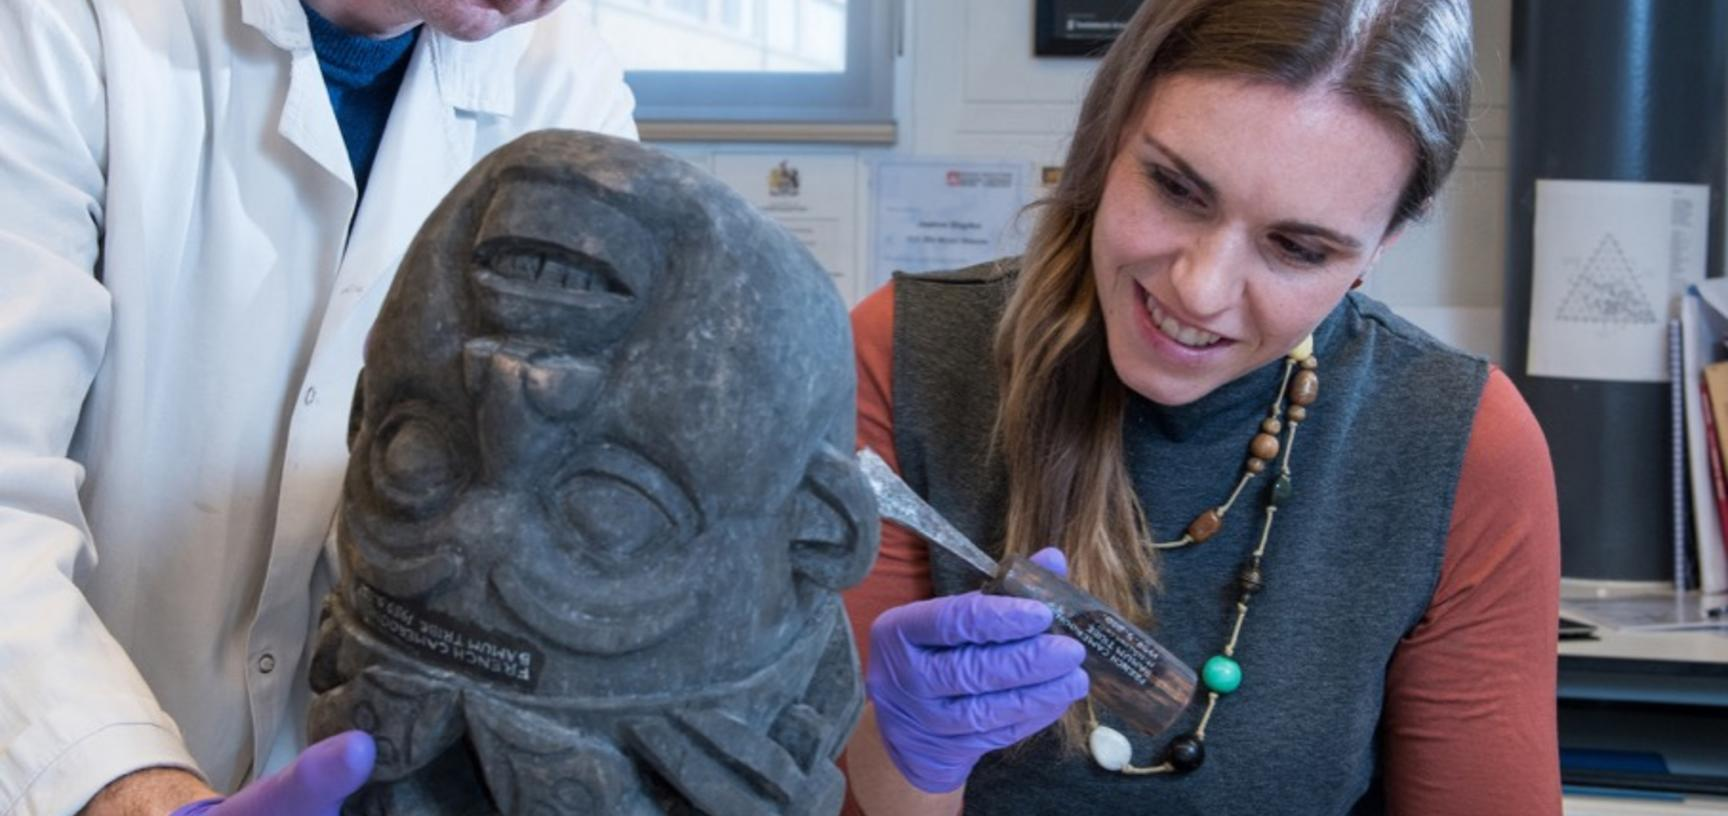 Creating new displays. We wanted to show the process of making, from raw materials to tools to finished products. Here, staff pair a wooden mask from Cameroon with a chisel collected with it and possibly used in its making.